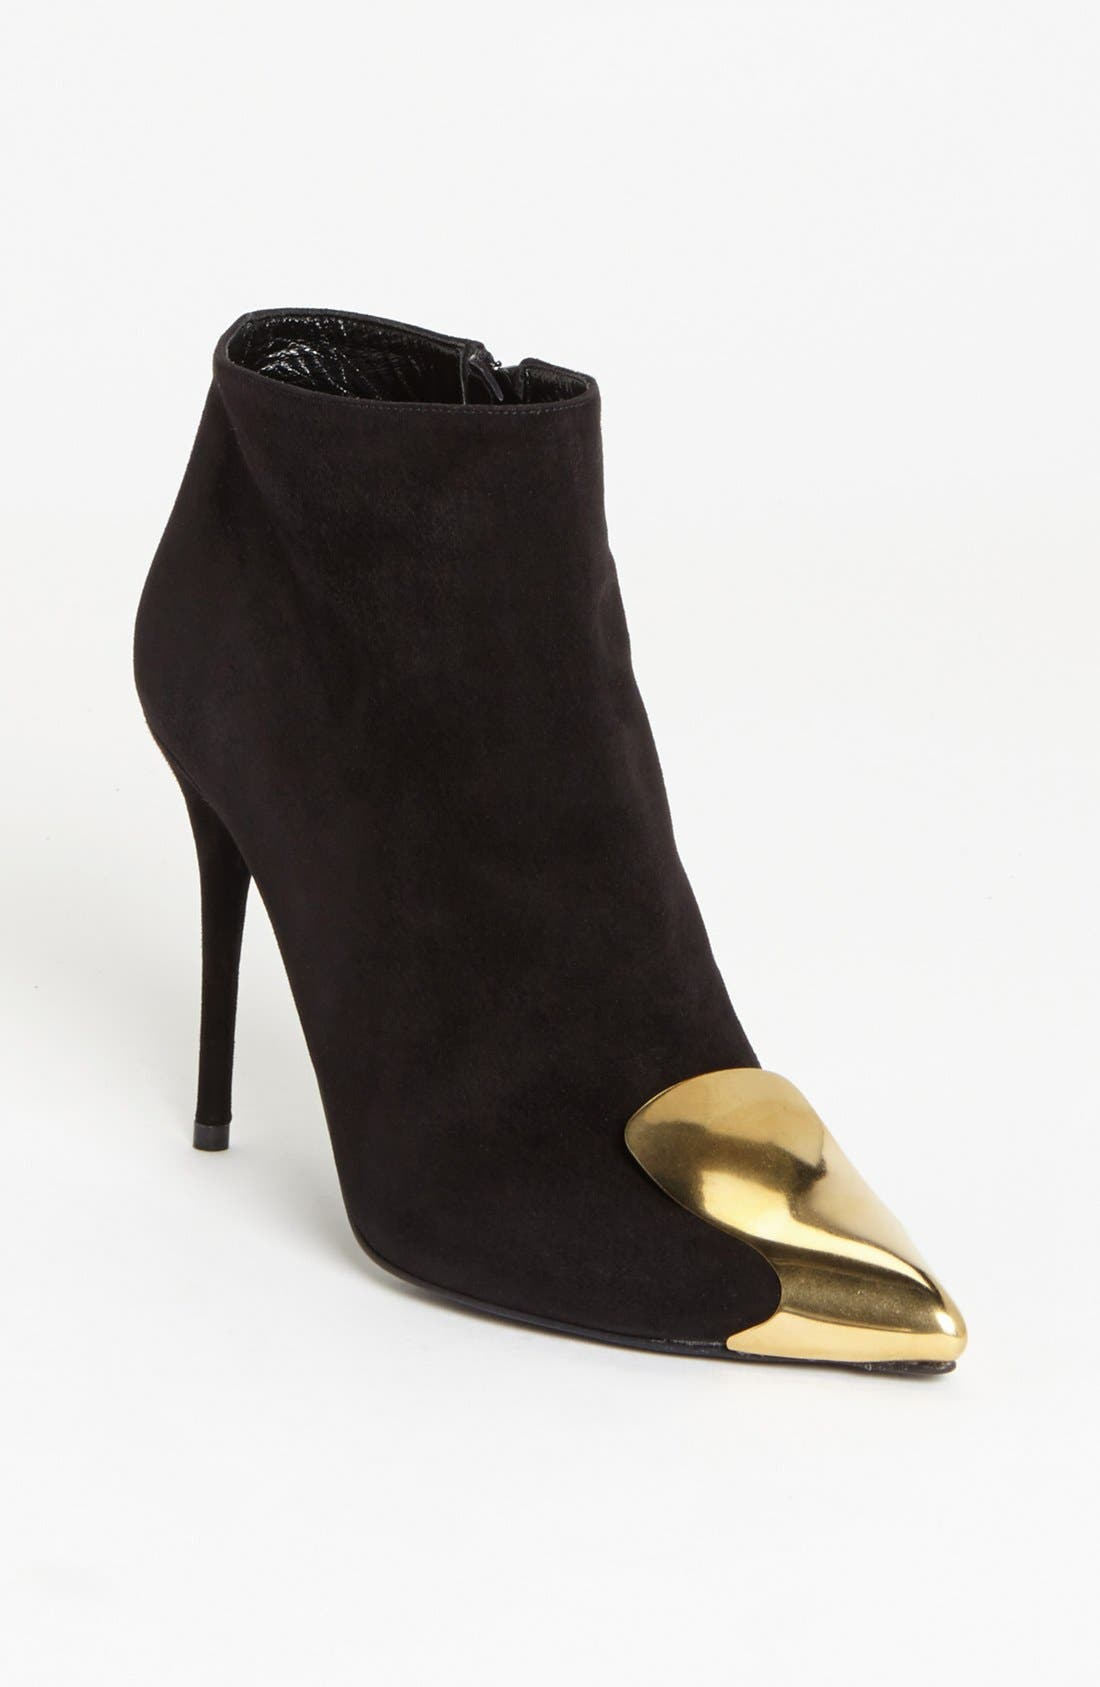 Alternate Image 1 Selected - Alexander McQueen Metal Toe Bootie